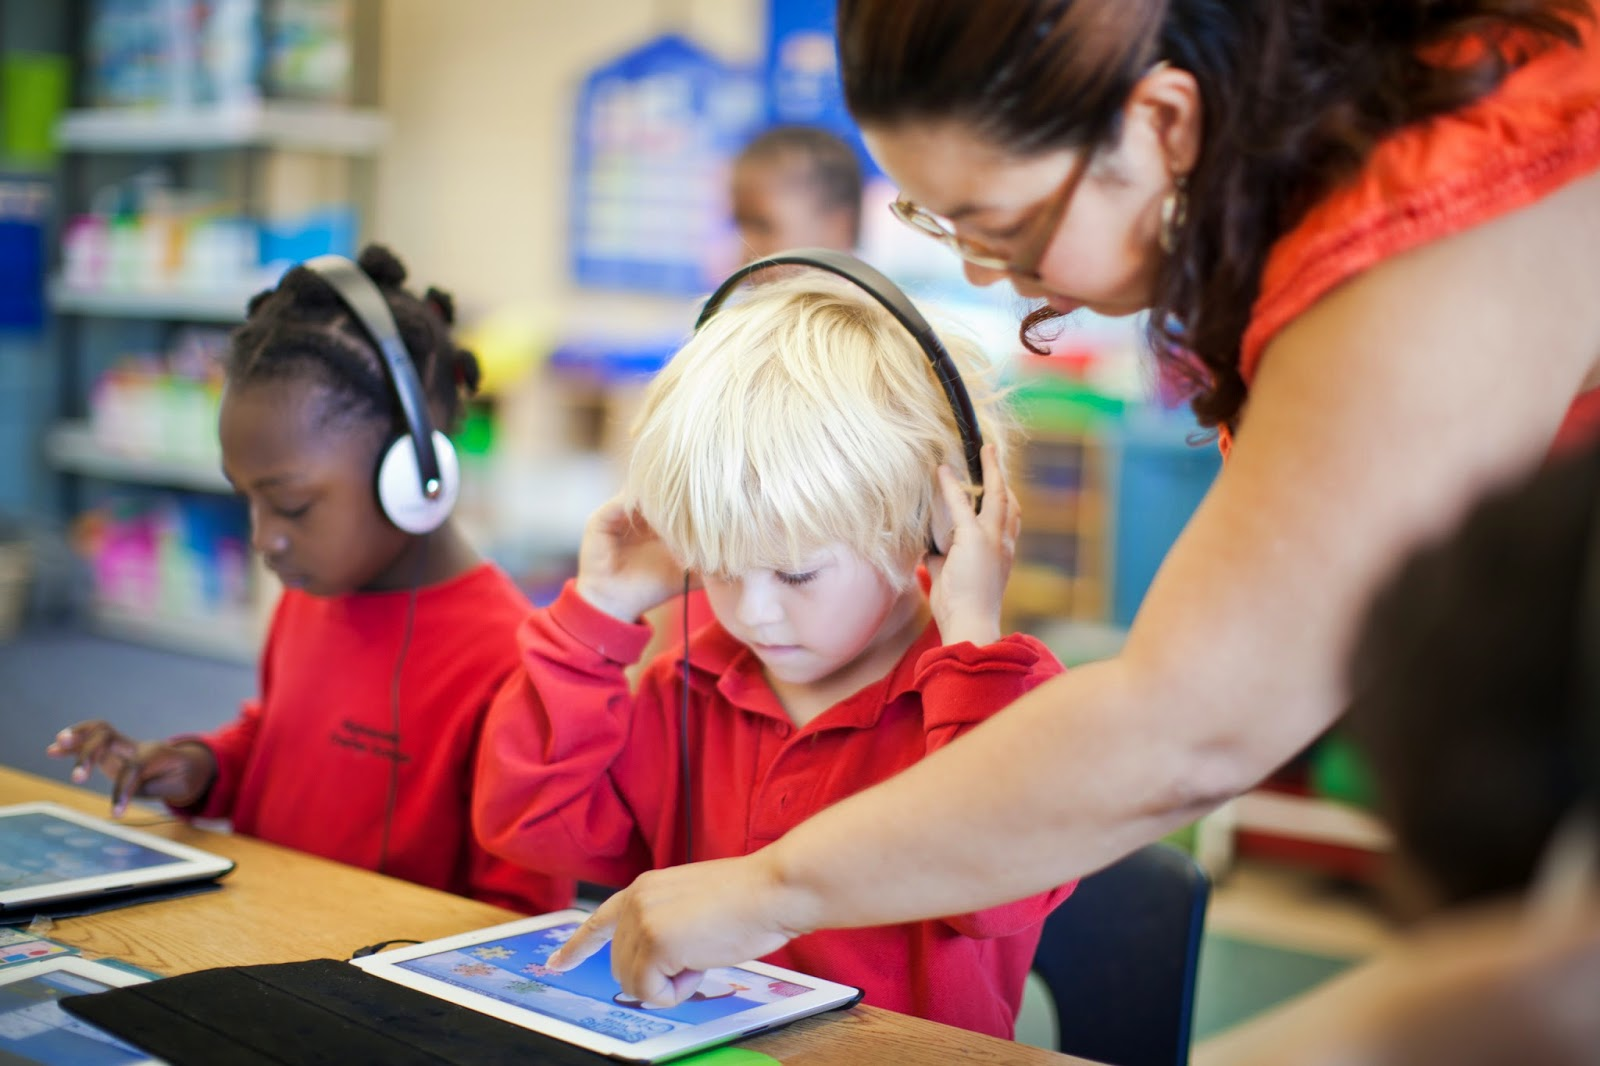 Picture of Teacher helping young student using an Ipad at their desk.